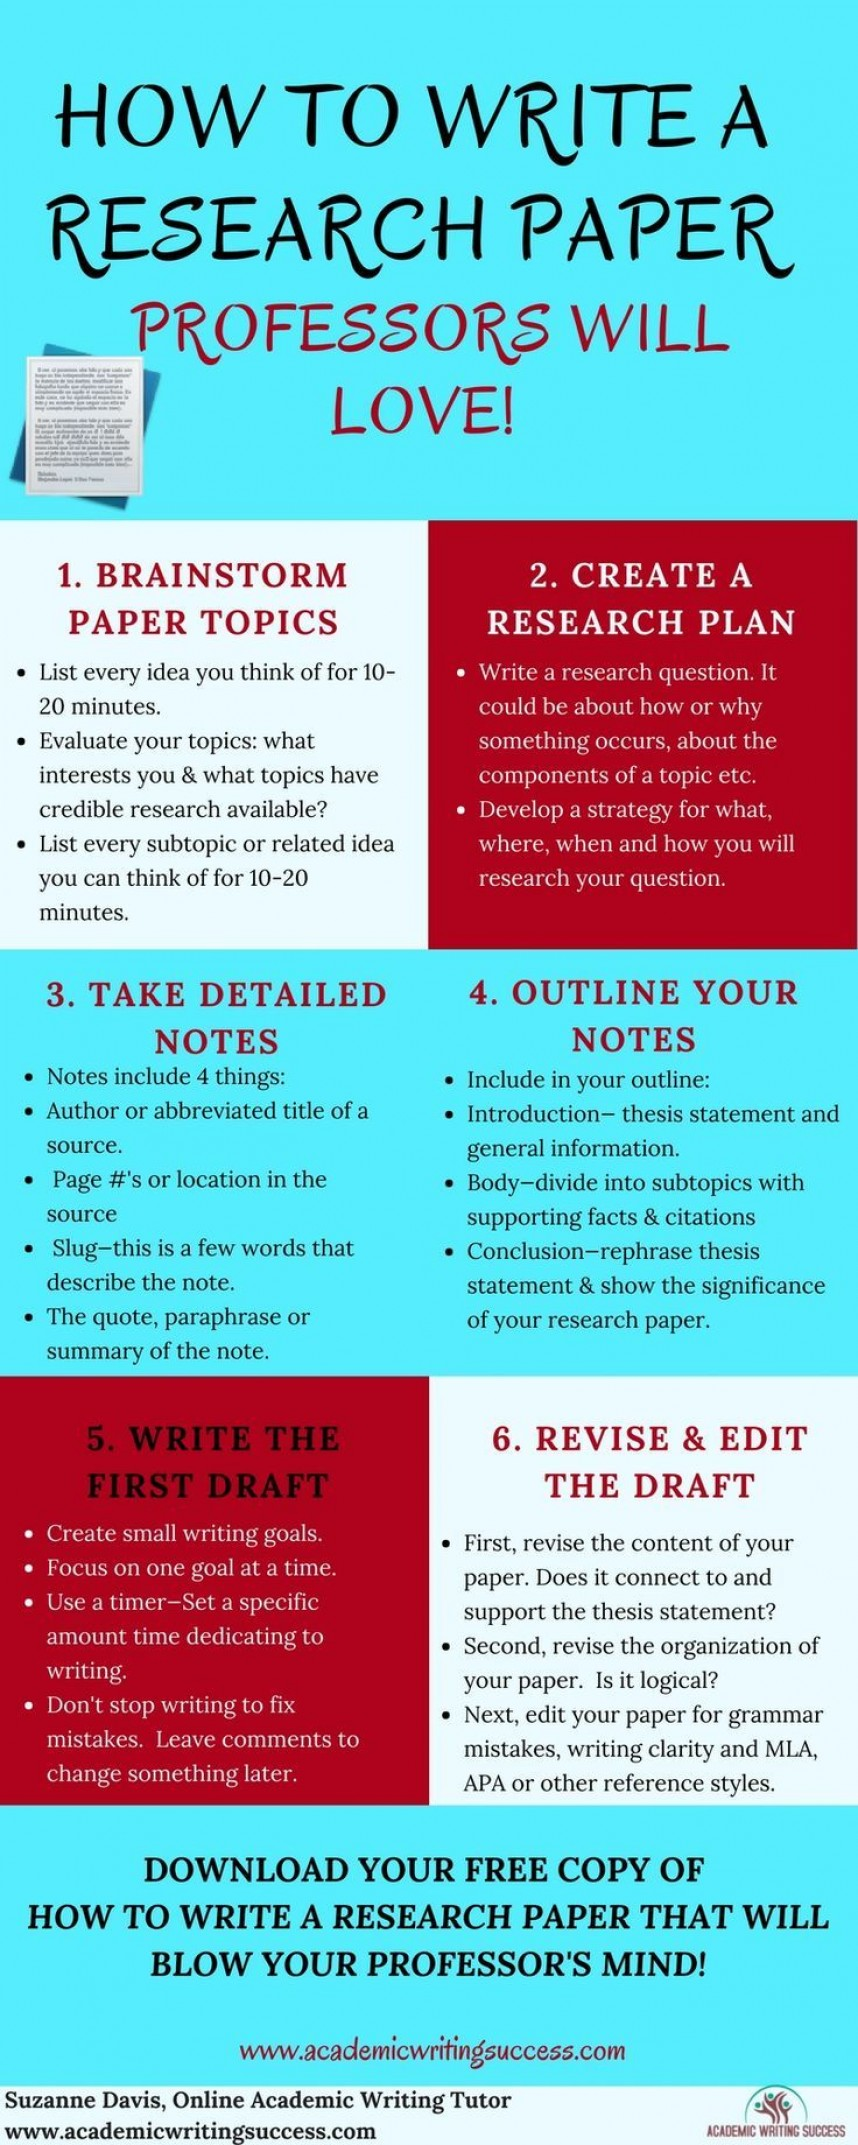 002 Research Paper Tips Awesome For College Students High School To Make